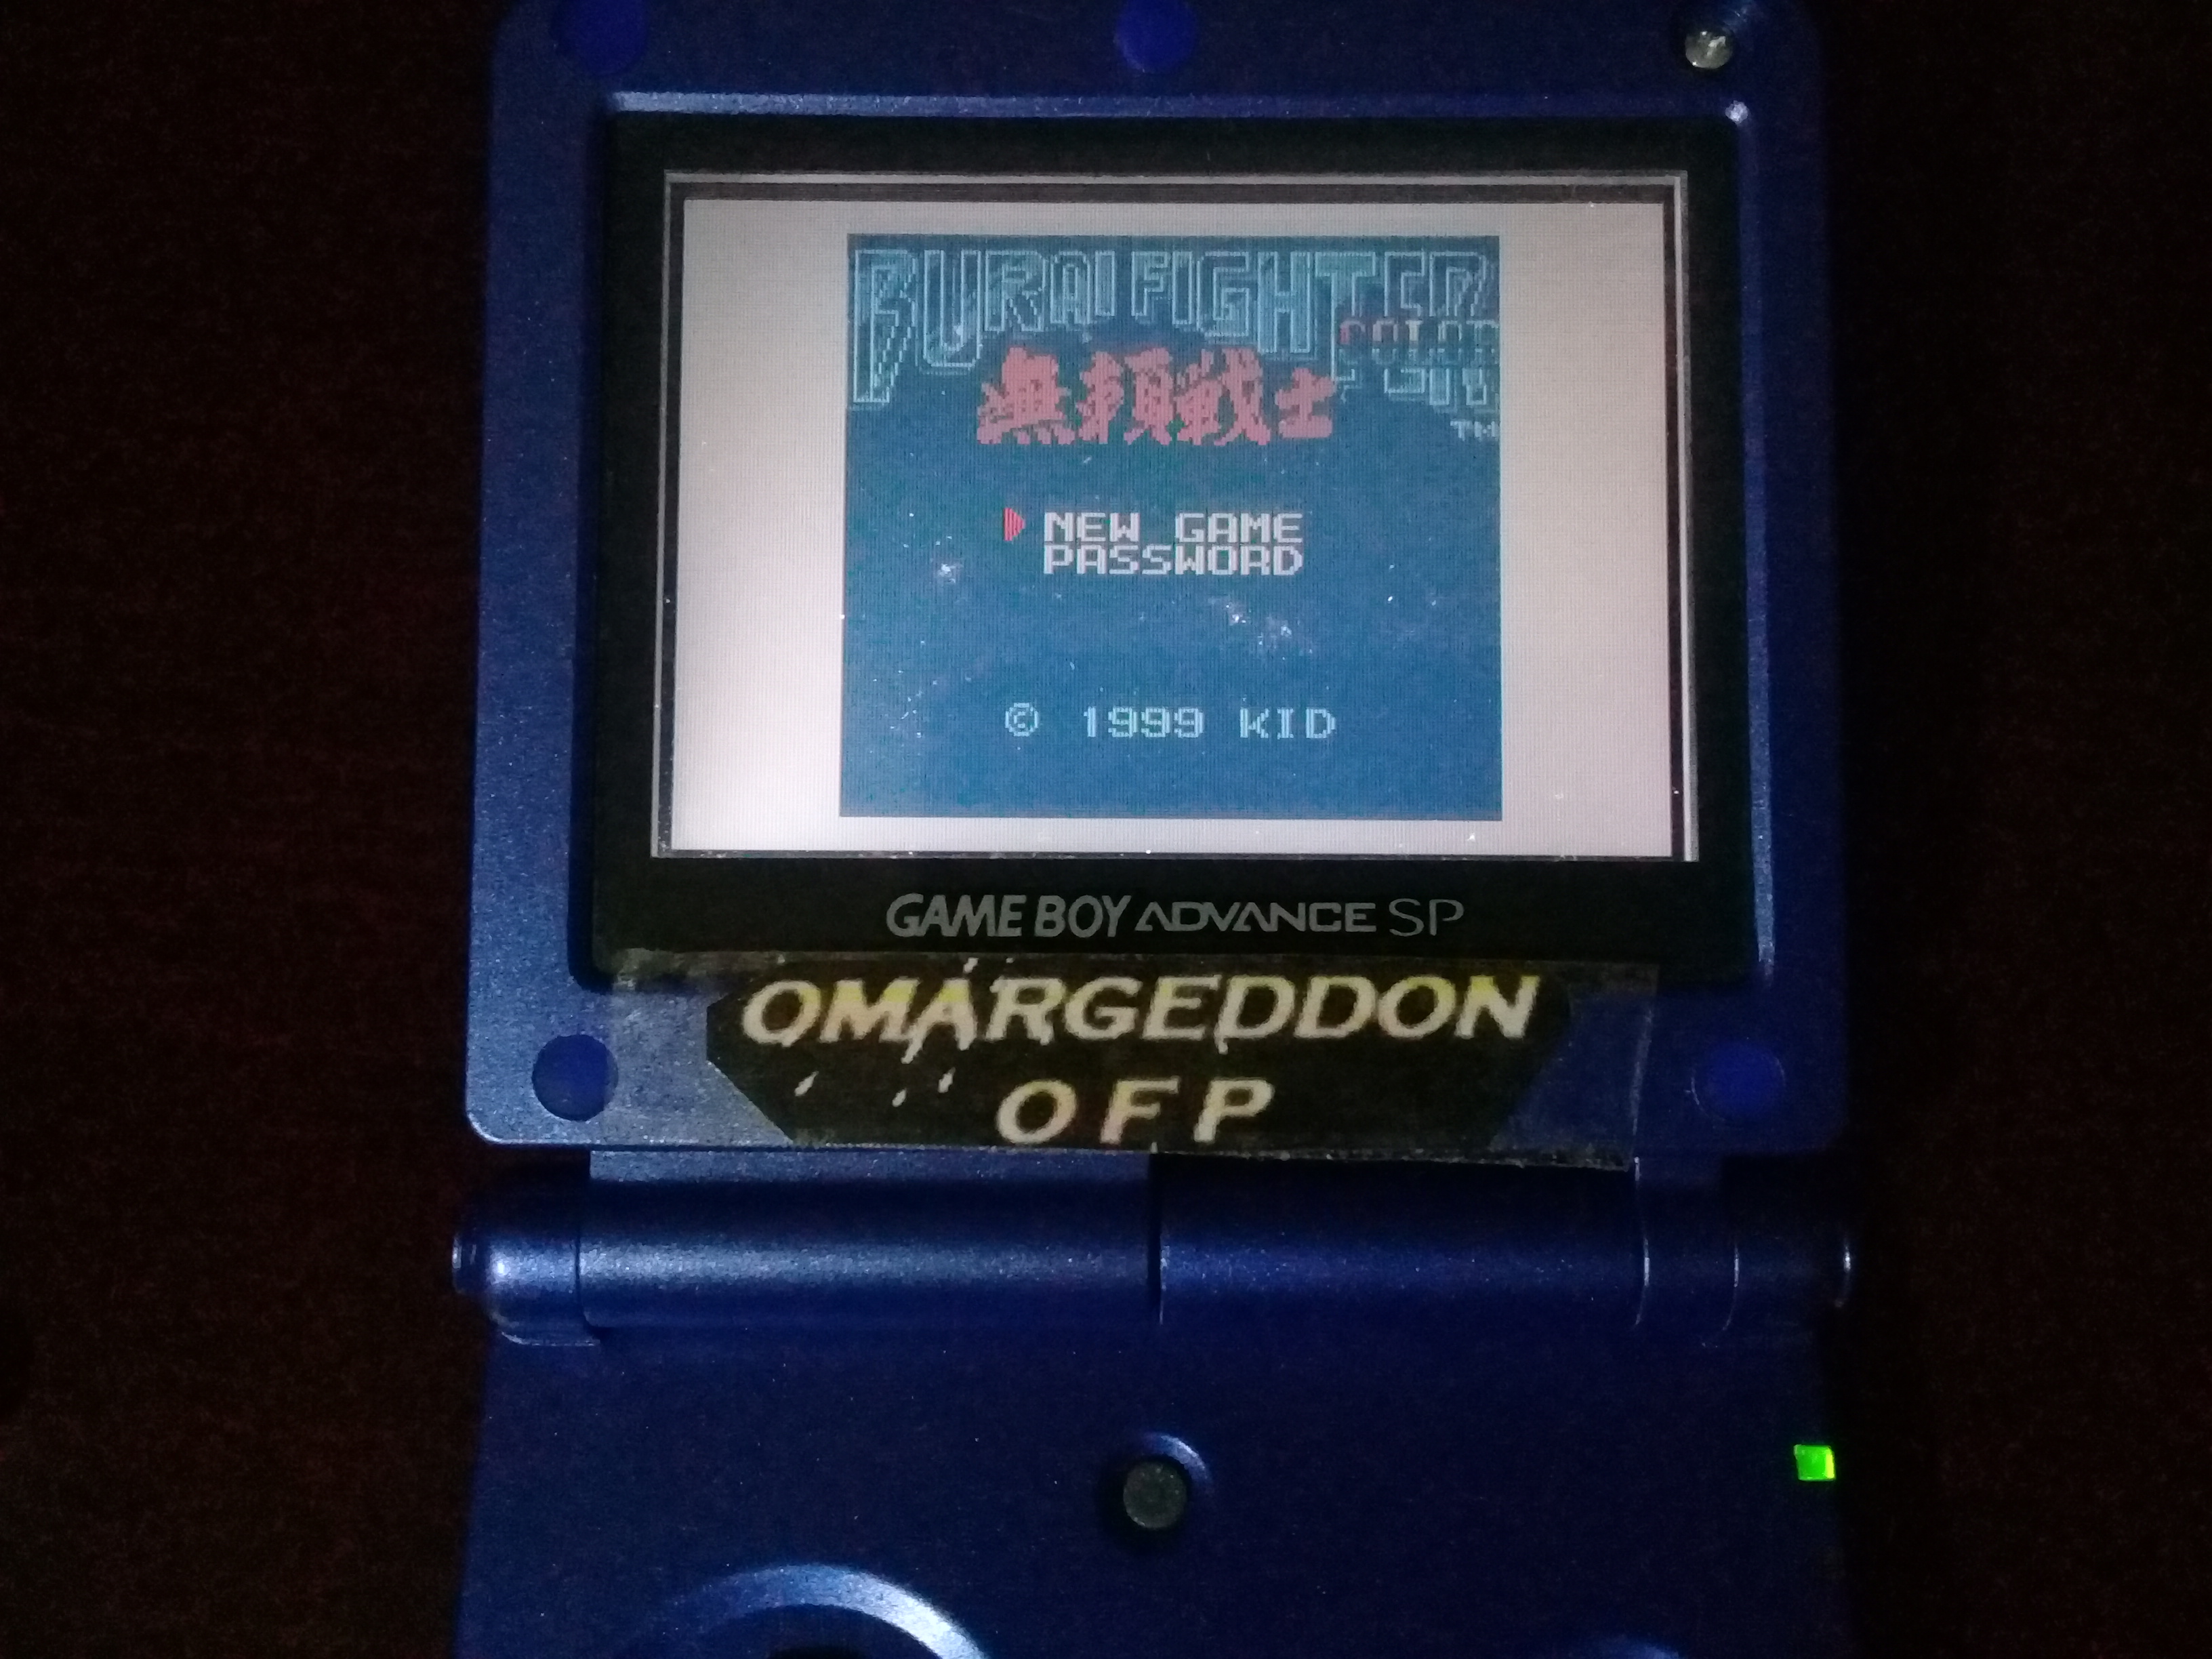 omargeddon: Burai Fighter Color [Ace] (Game Boy Color) 47,120 points on 2020-12-25 19:56:13